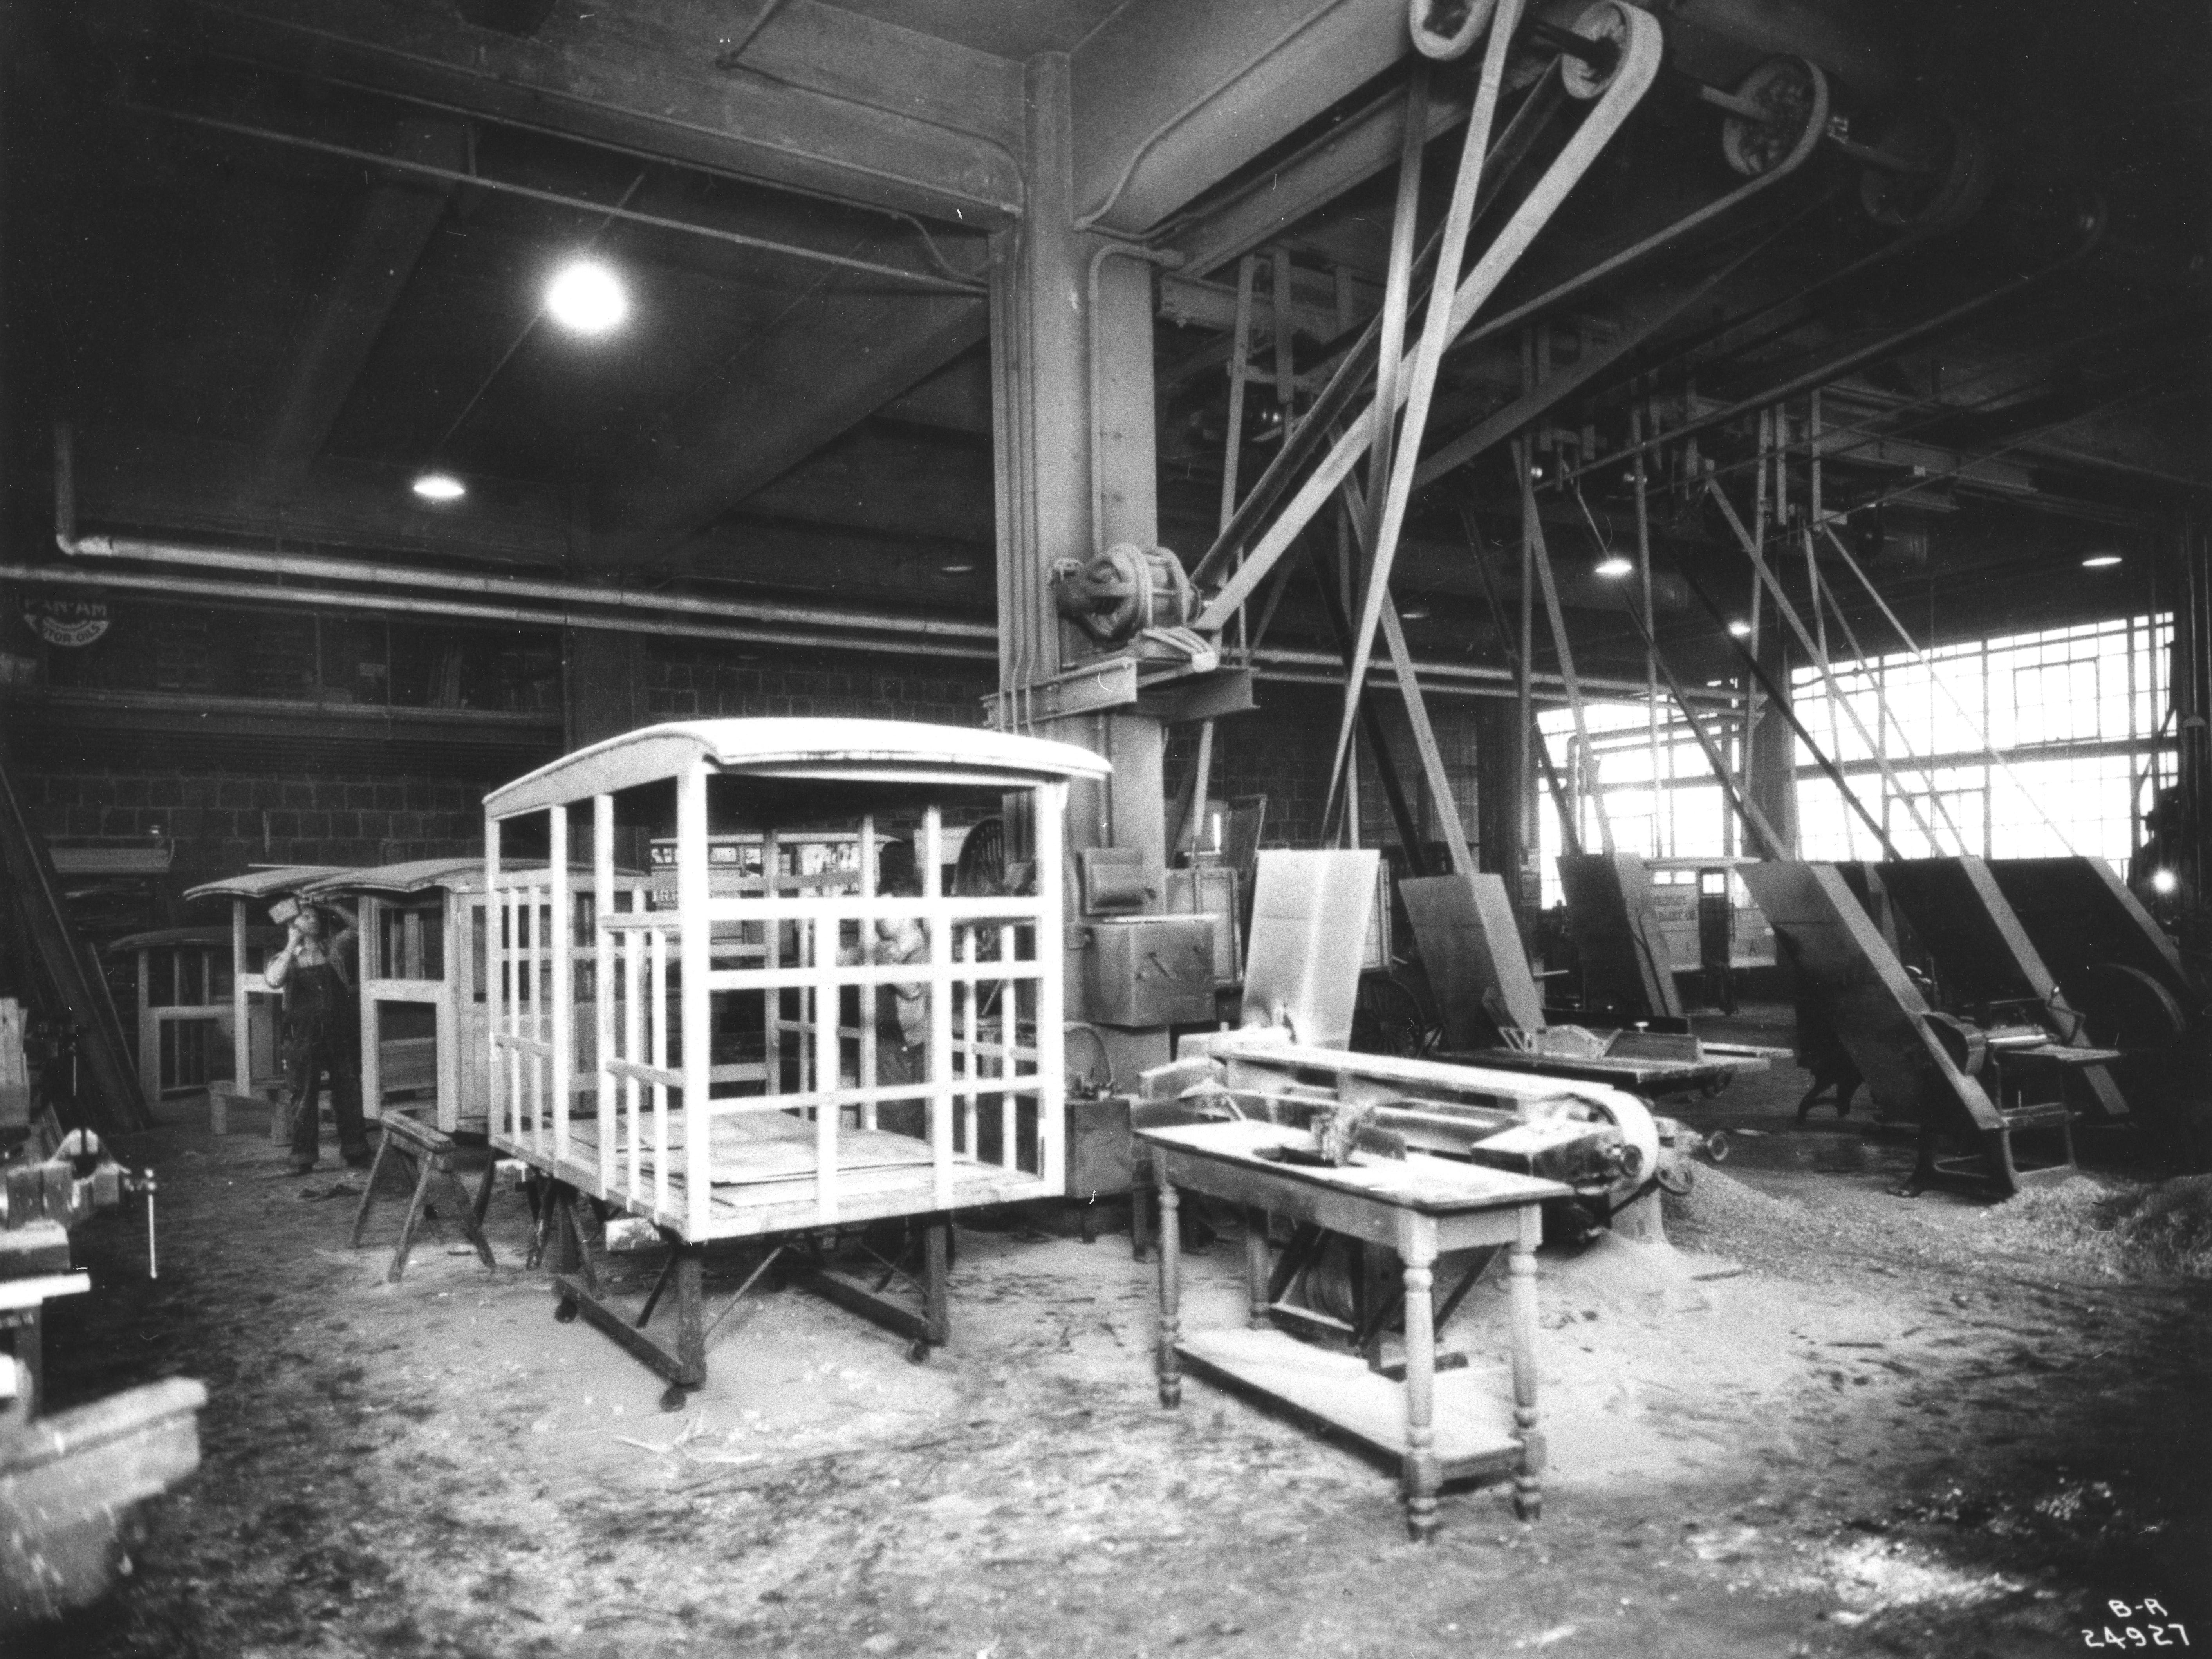 In 1924, milk wagons were still in demand. A worker in the carpentry shop of L.V. Gridley Dairy Co. (1897-1942) assembles wooden frames for future horse-drawn milk wagons. The dairy became part of Borden Co. in 1942.